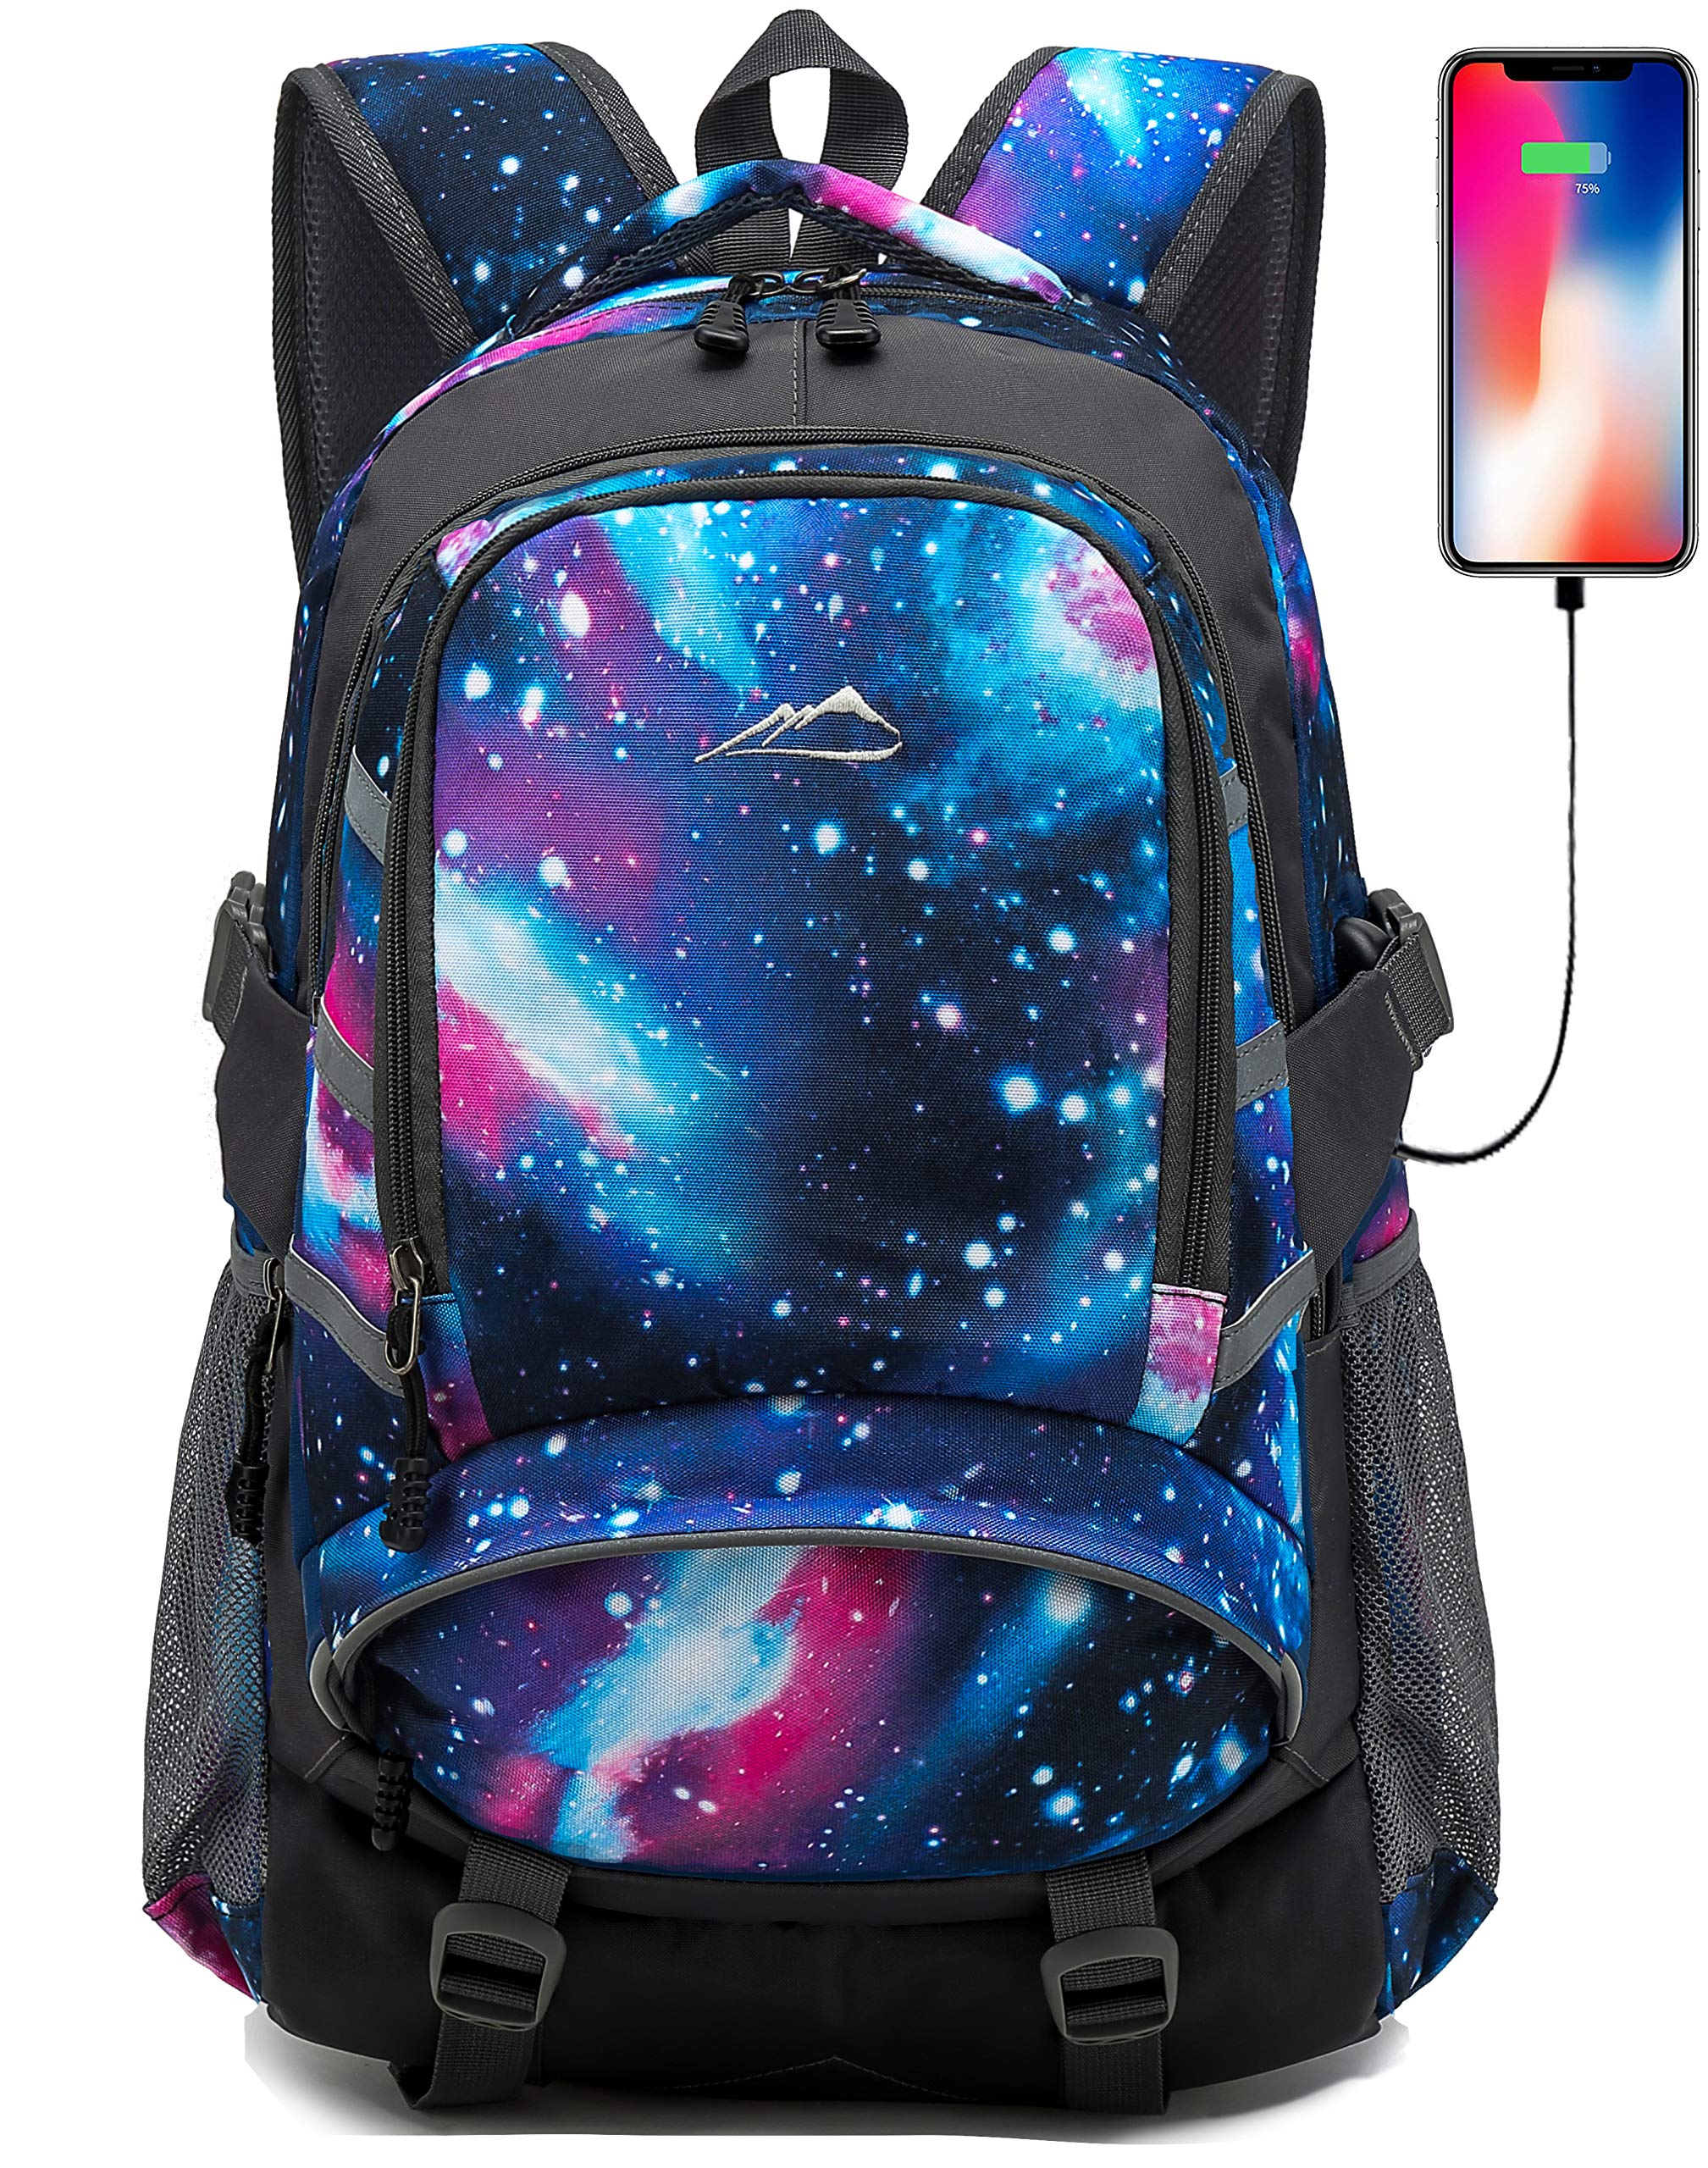 Backpack for School College Student Bookbag Travel Business with USB Charging Port Laptop Compartment Chest Straps Night Light Reflective Anti theft (Galaxy) by ProEtrade